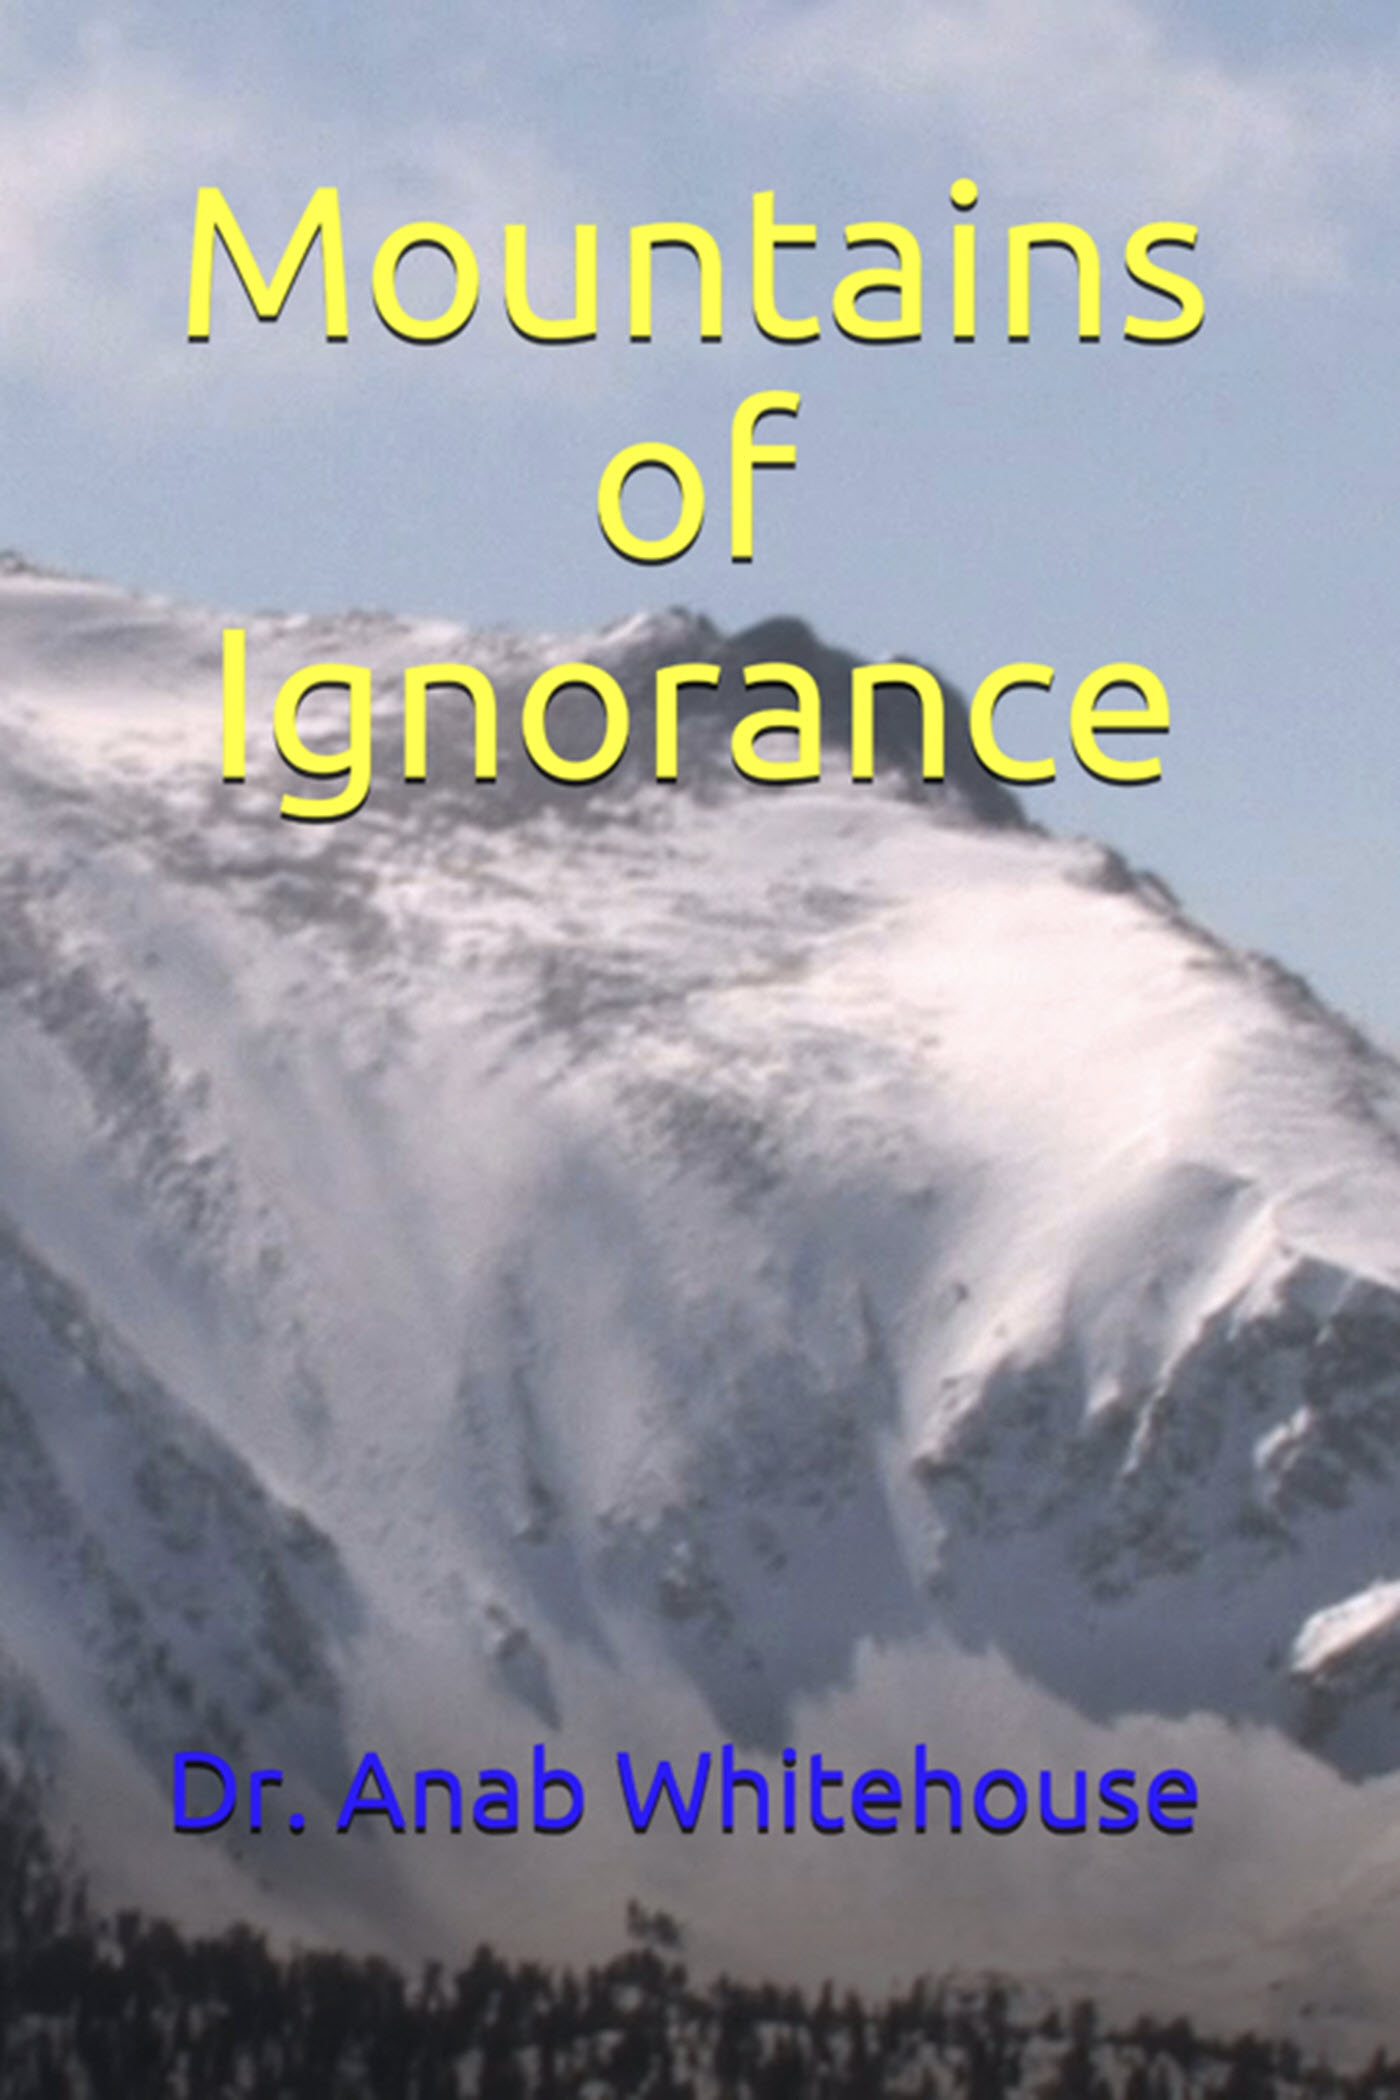 Mountains of Ignorance